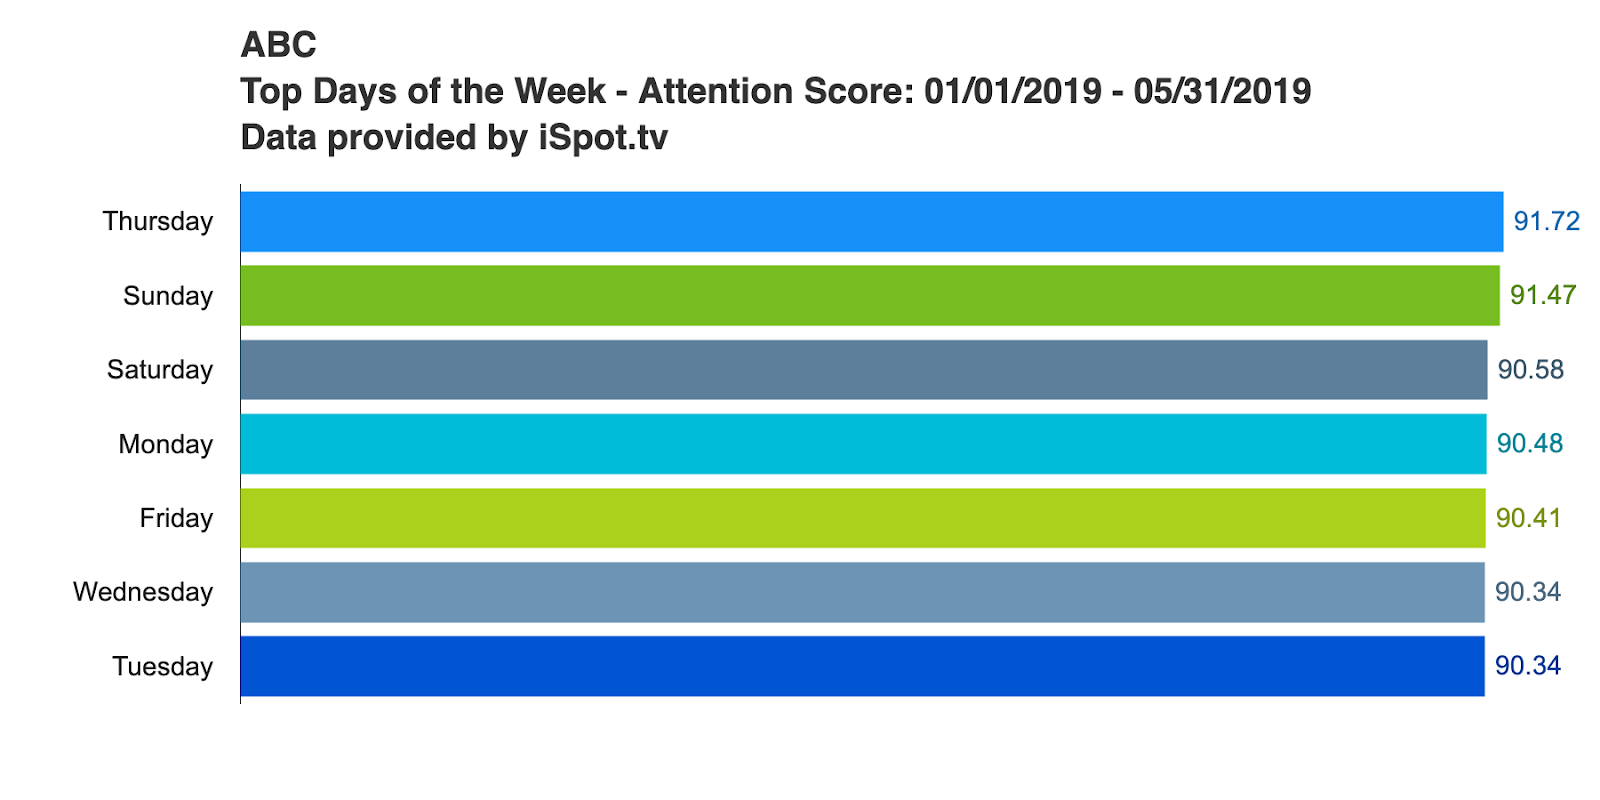 Network Spotlight: Advertising and Viewership Trends for ABC